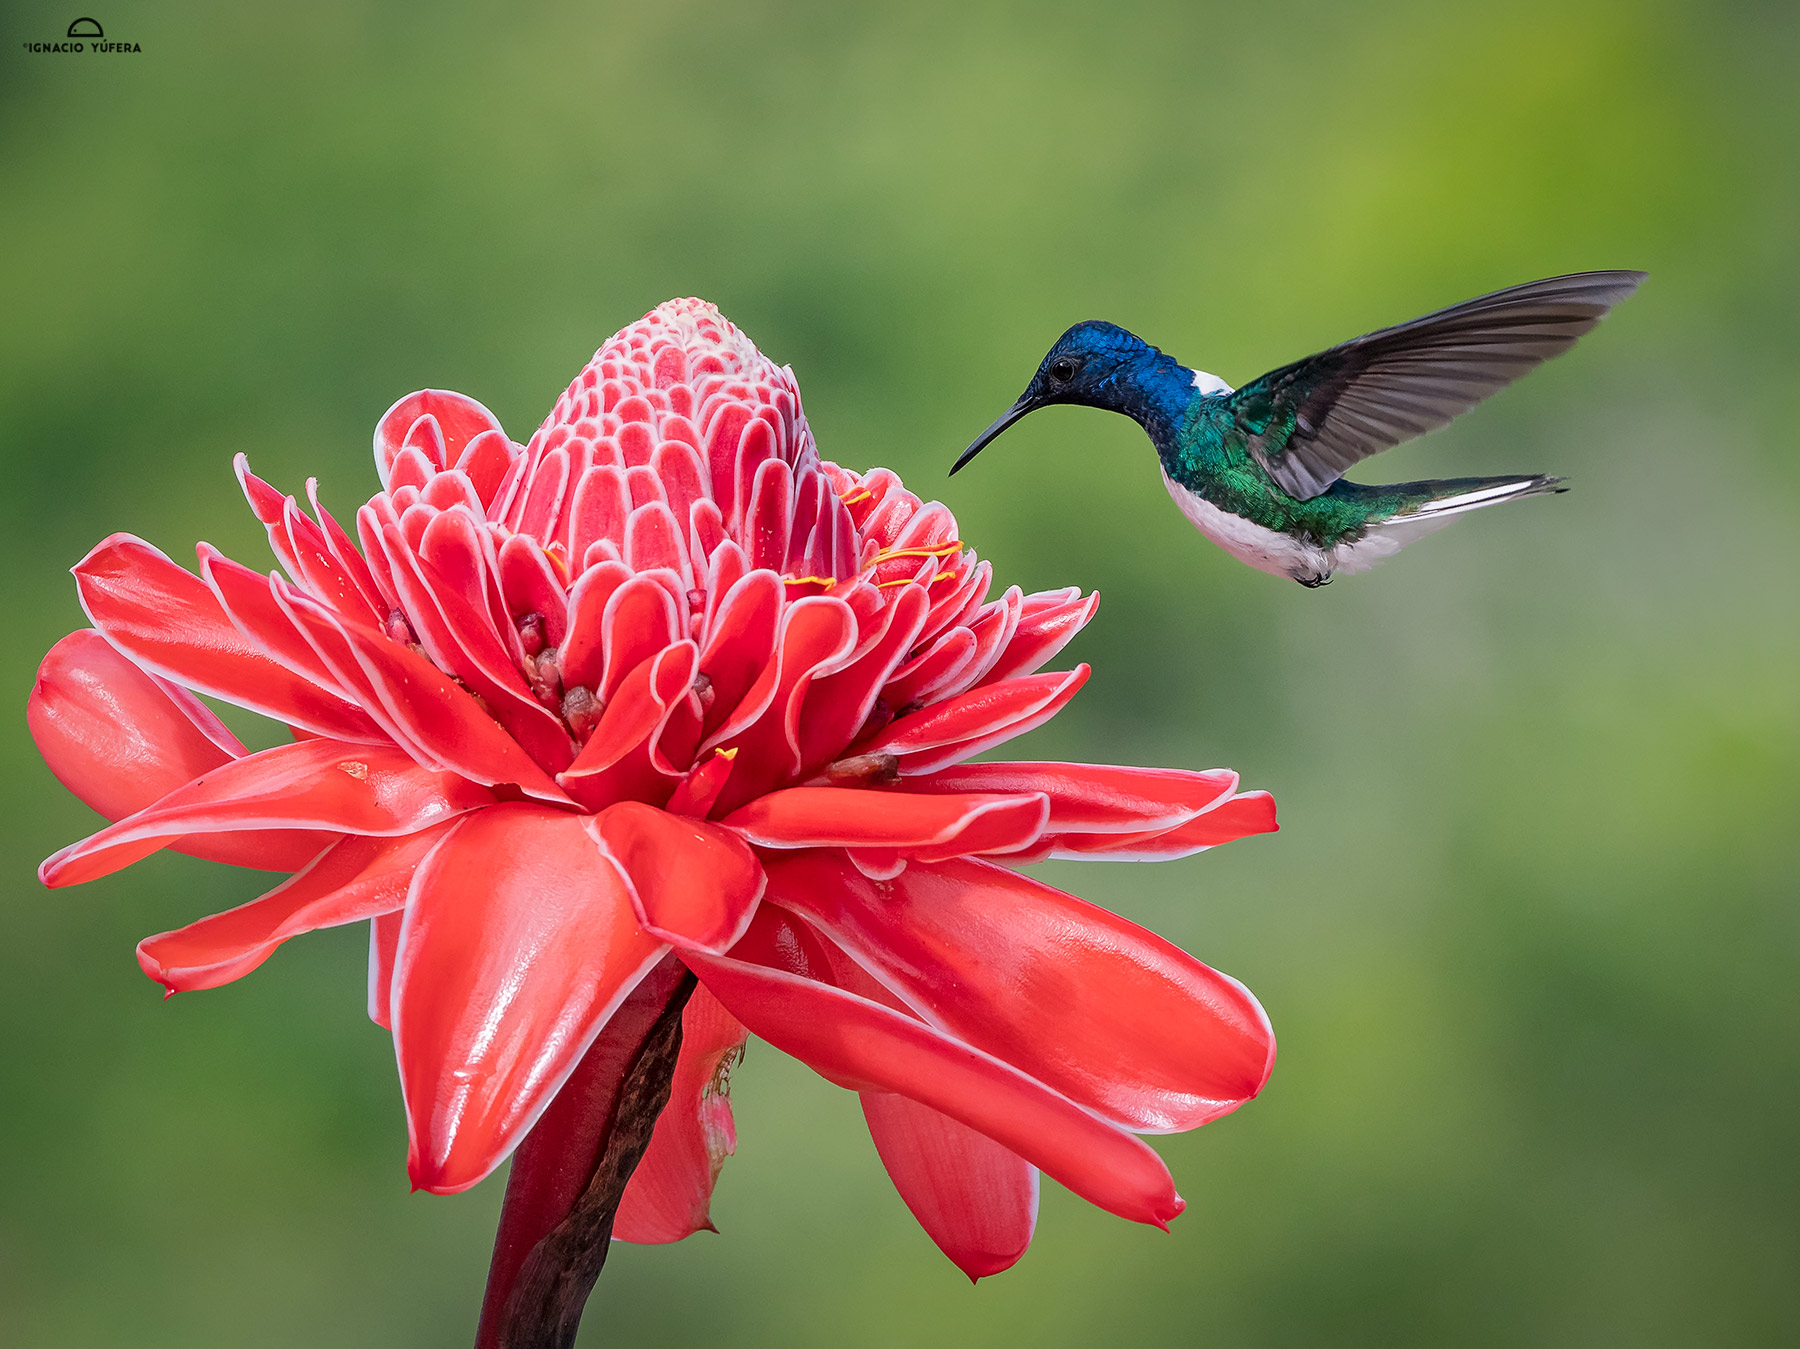 White-necked Jacobin (Florisuga mellivora), feeding on ginger torch flower nectar, Chiriquí, Panama